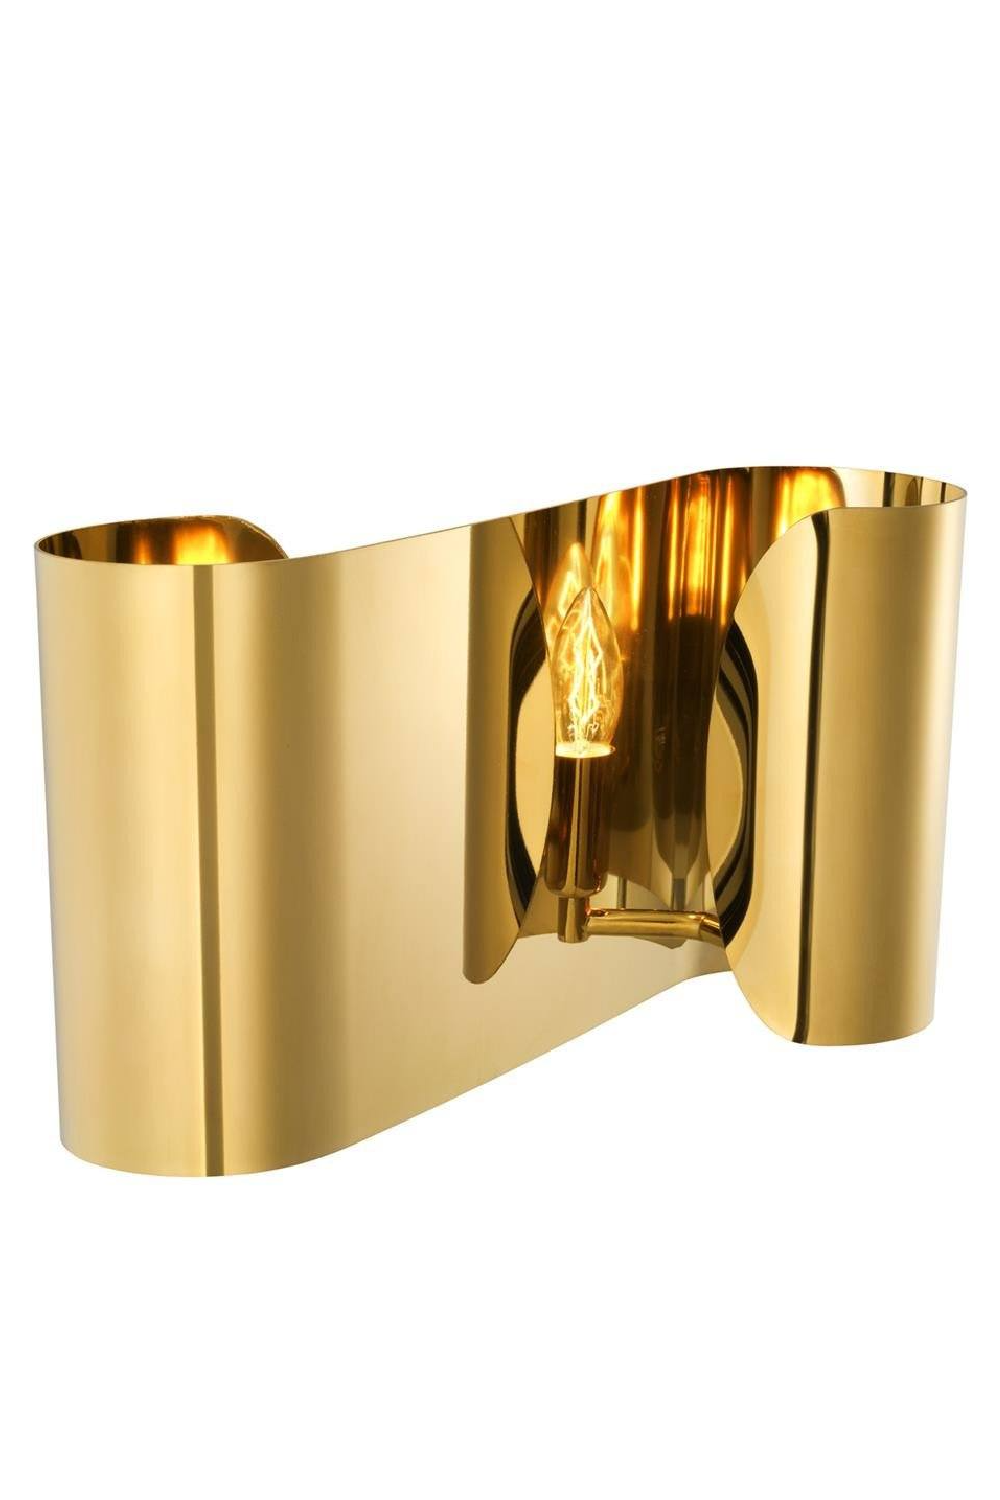 Curved Gold Wall Sconce | Eichholtz Crawley | OROA Luxury Furniture